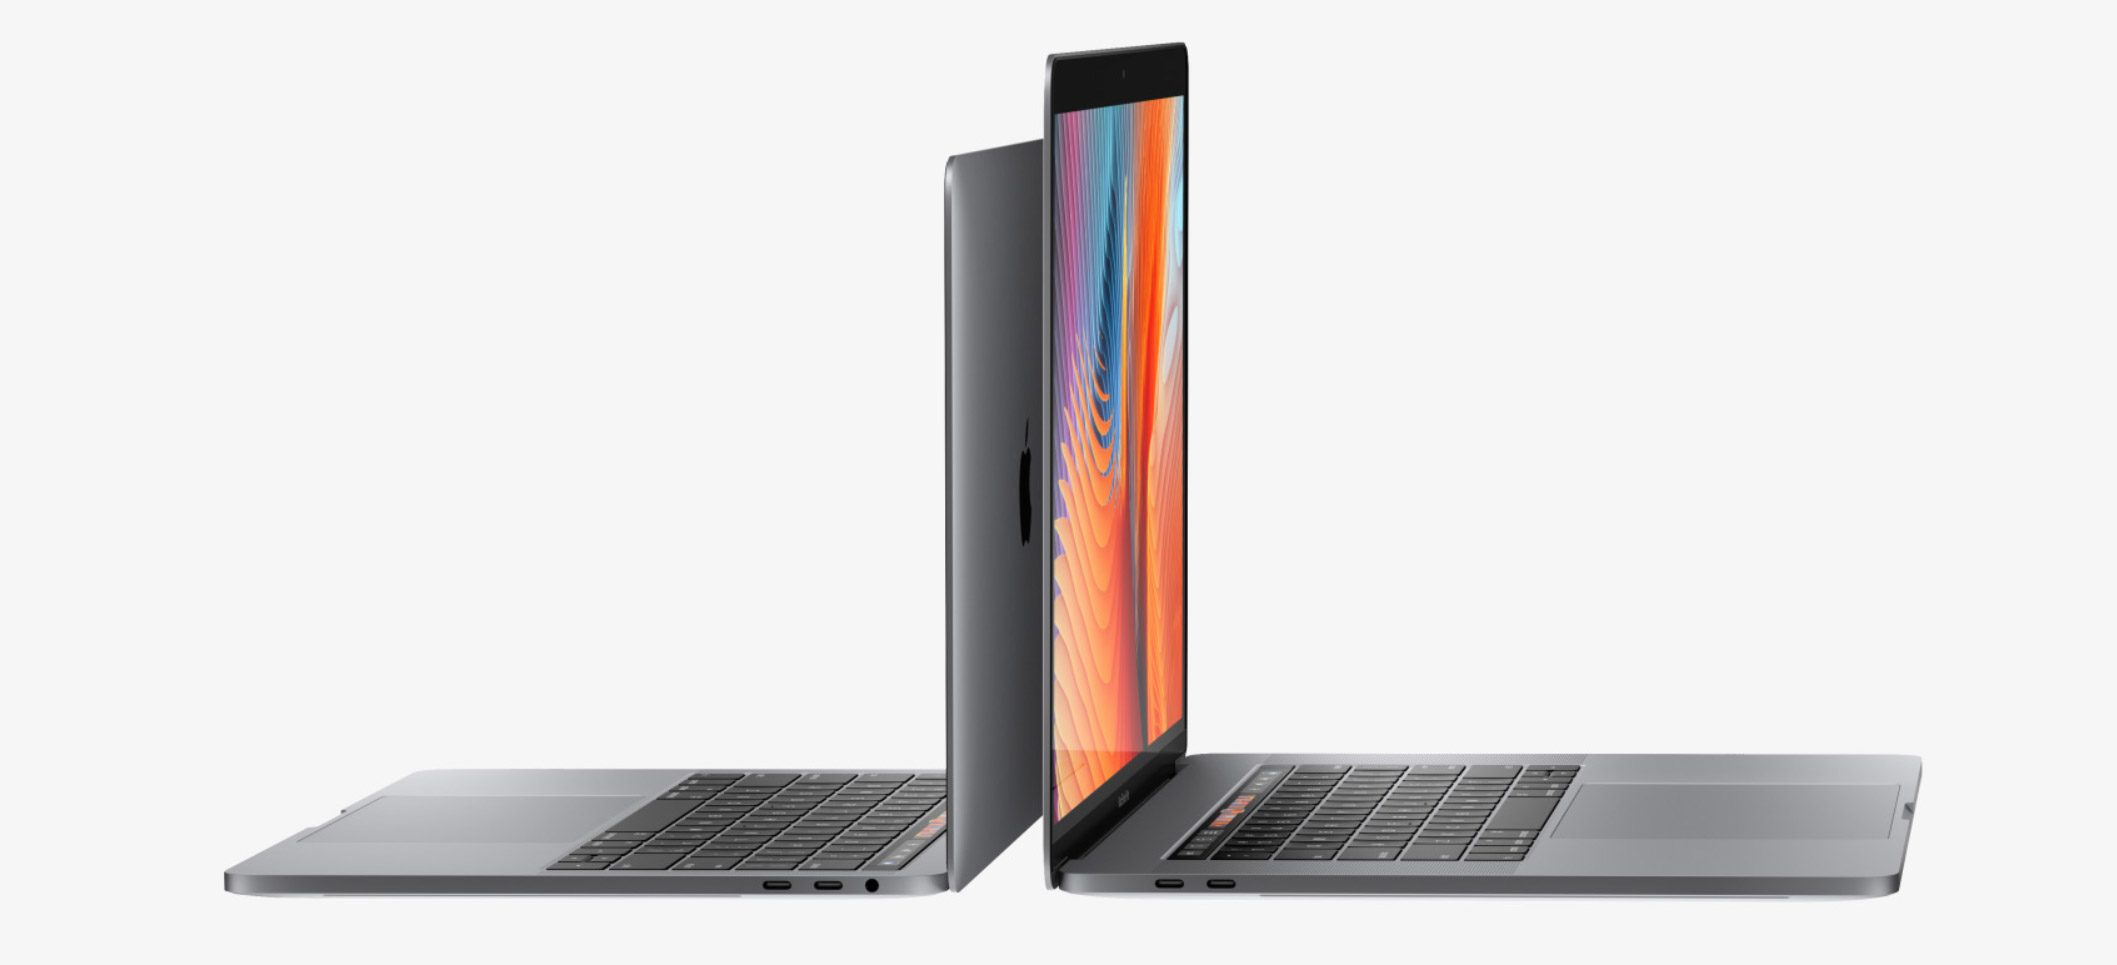 Select professionals will benefit from the MacBook Pros' performance, screens and selection of accessories, but the average-user might find better value elsewhere